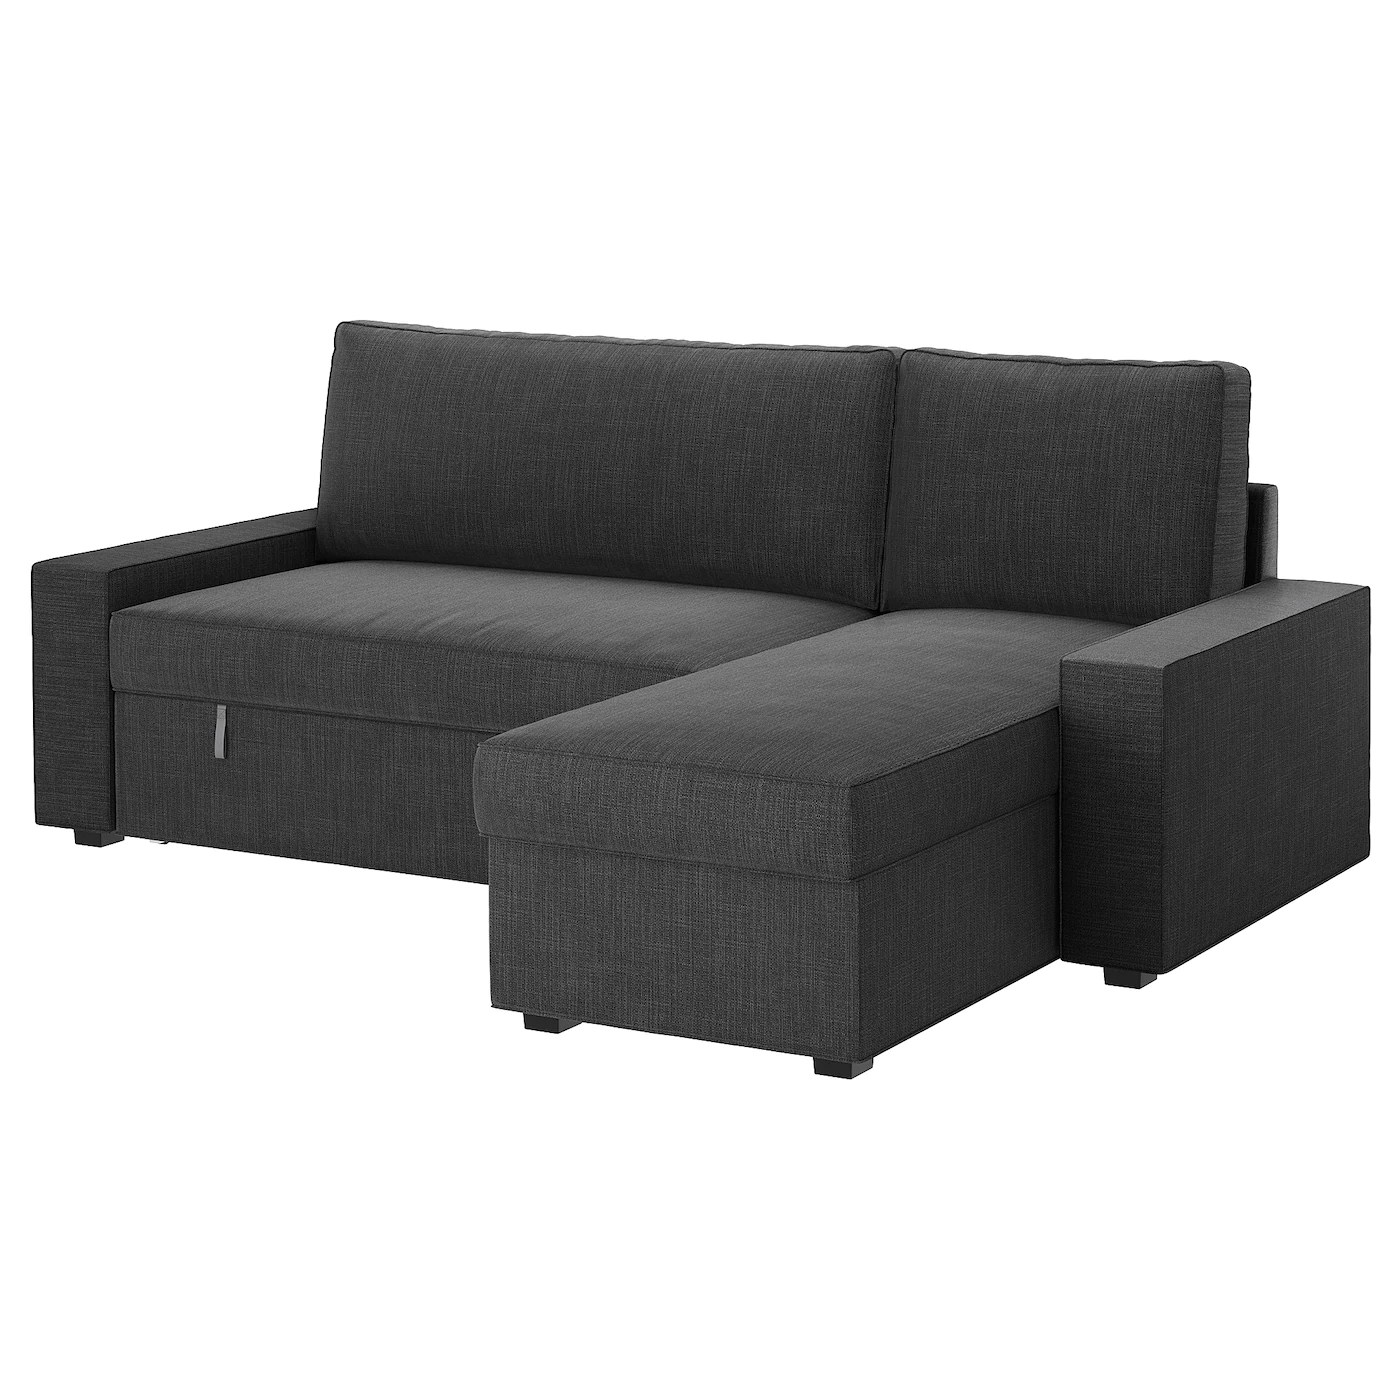 Ikea Vilasund Sofa Bed Vilasund Sofa Bed With Chaise Longue Hillared Anthracite